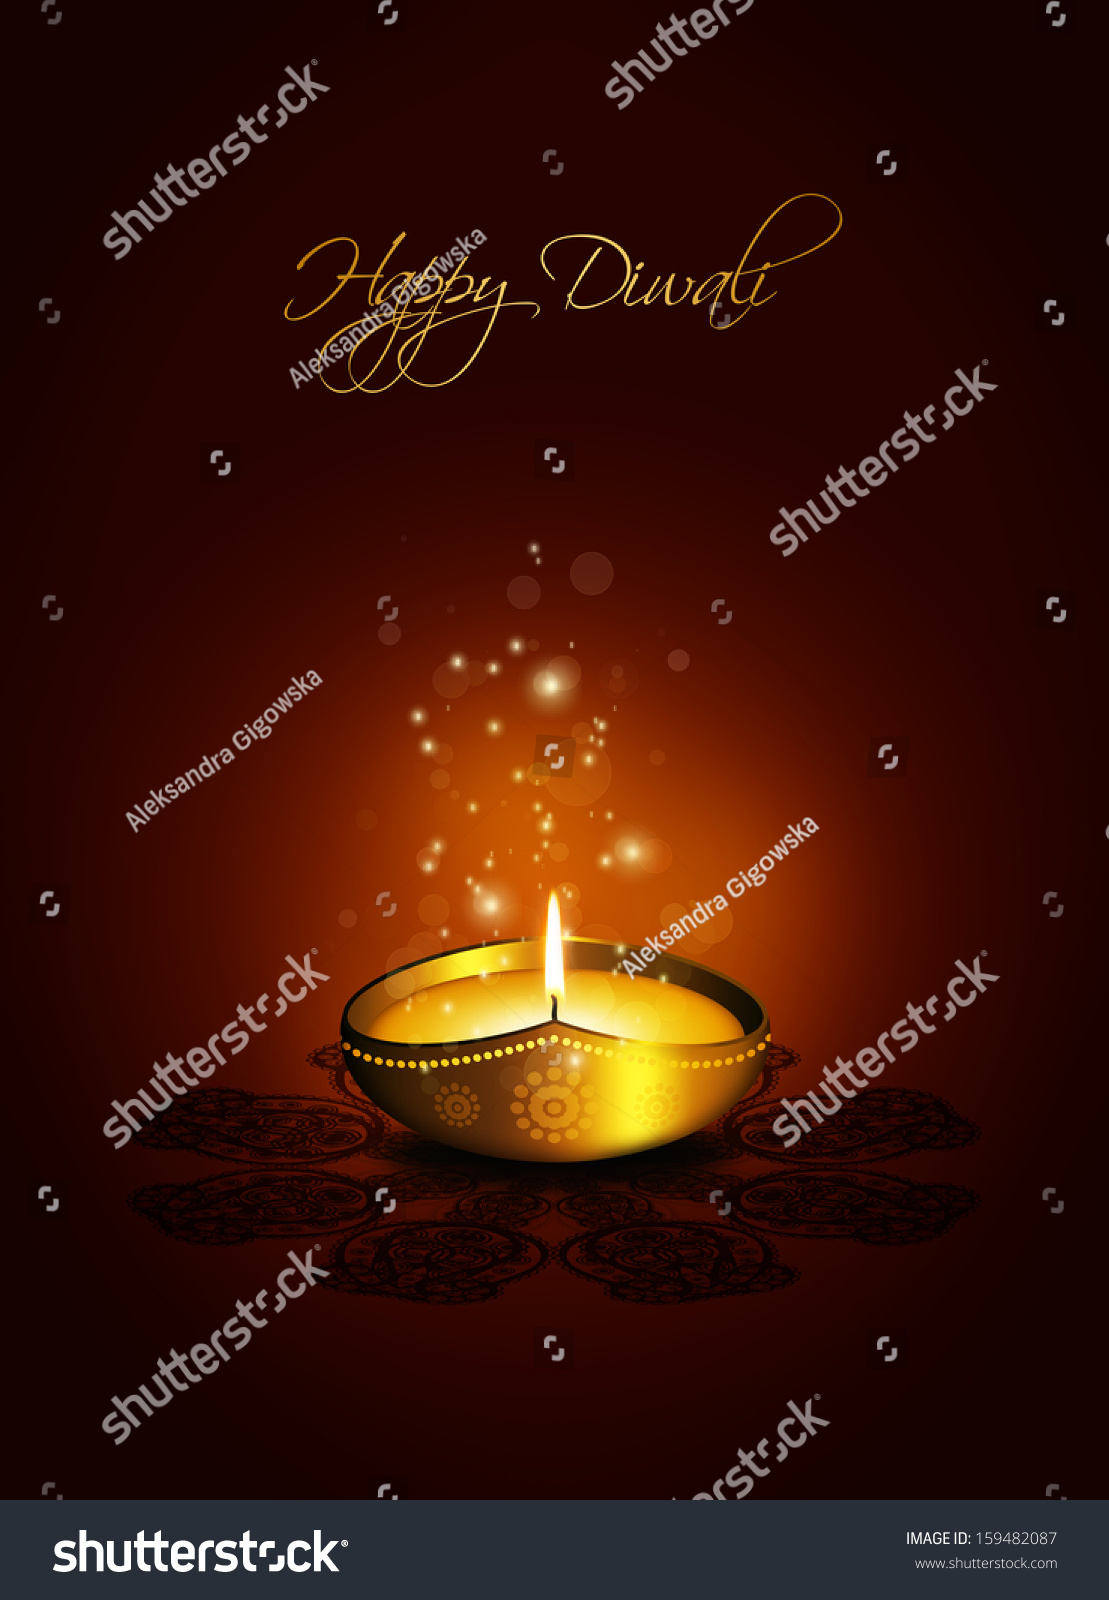 Oil Lamp Place Diwali Greetings Over Stock Illustration 159482087